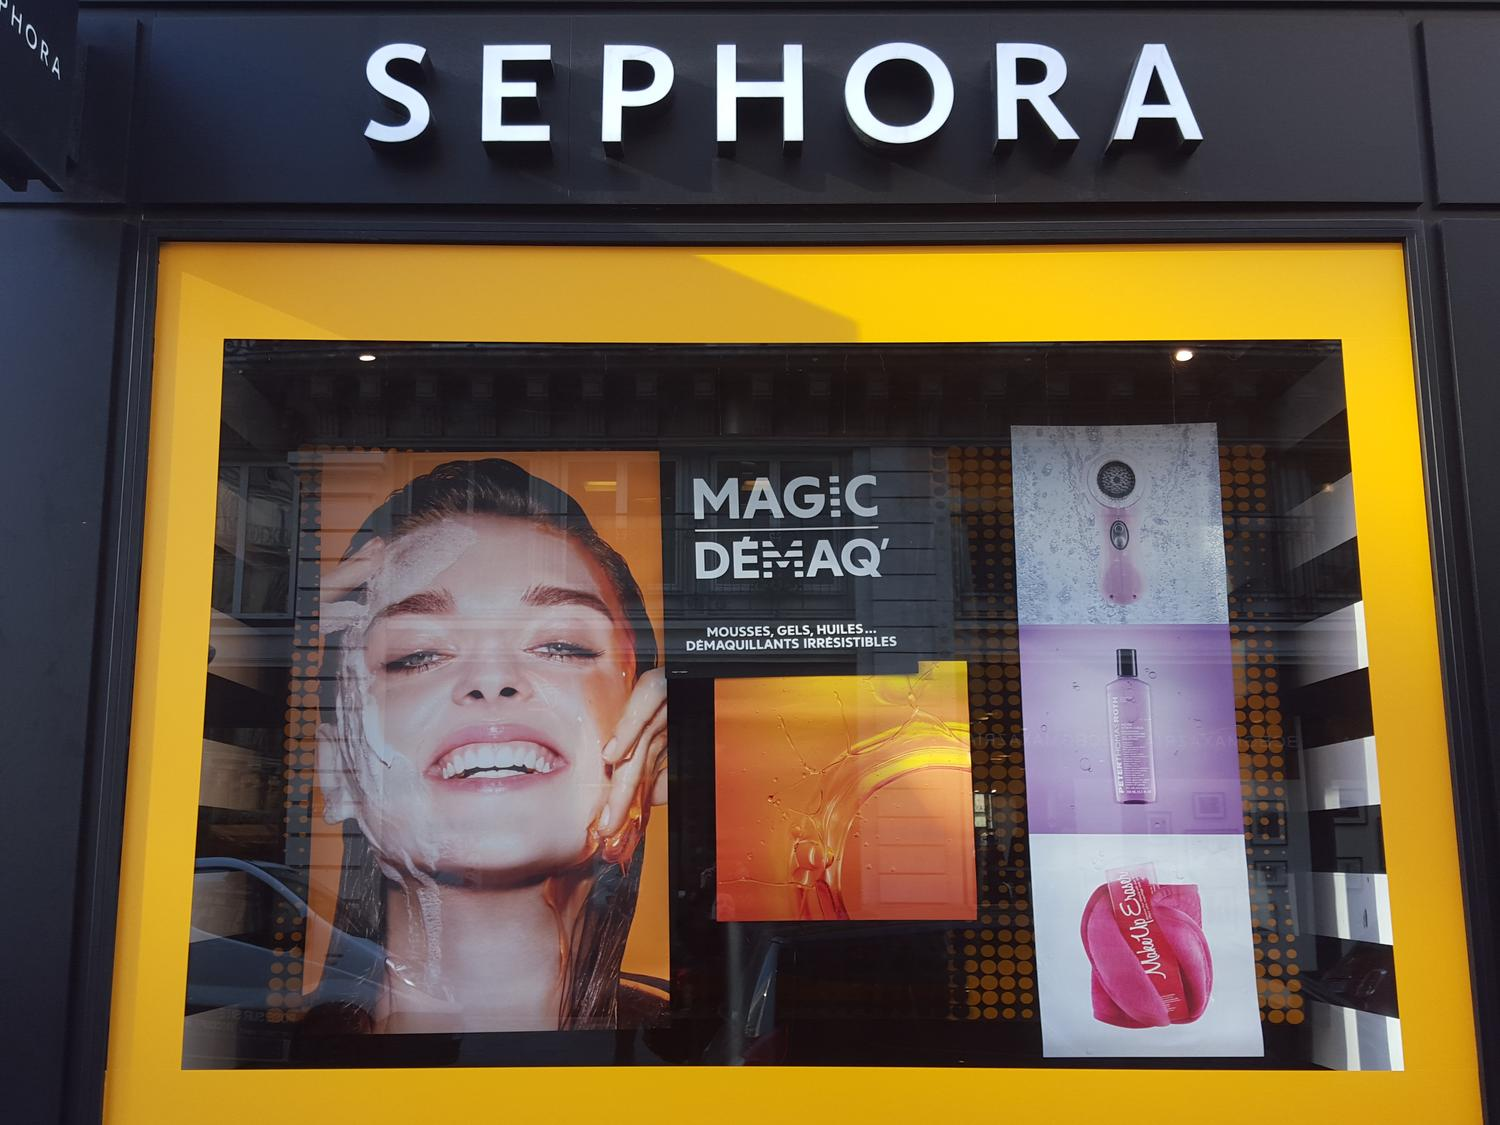 Vitrine Sephora-Magic Démaq